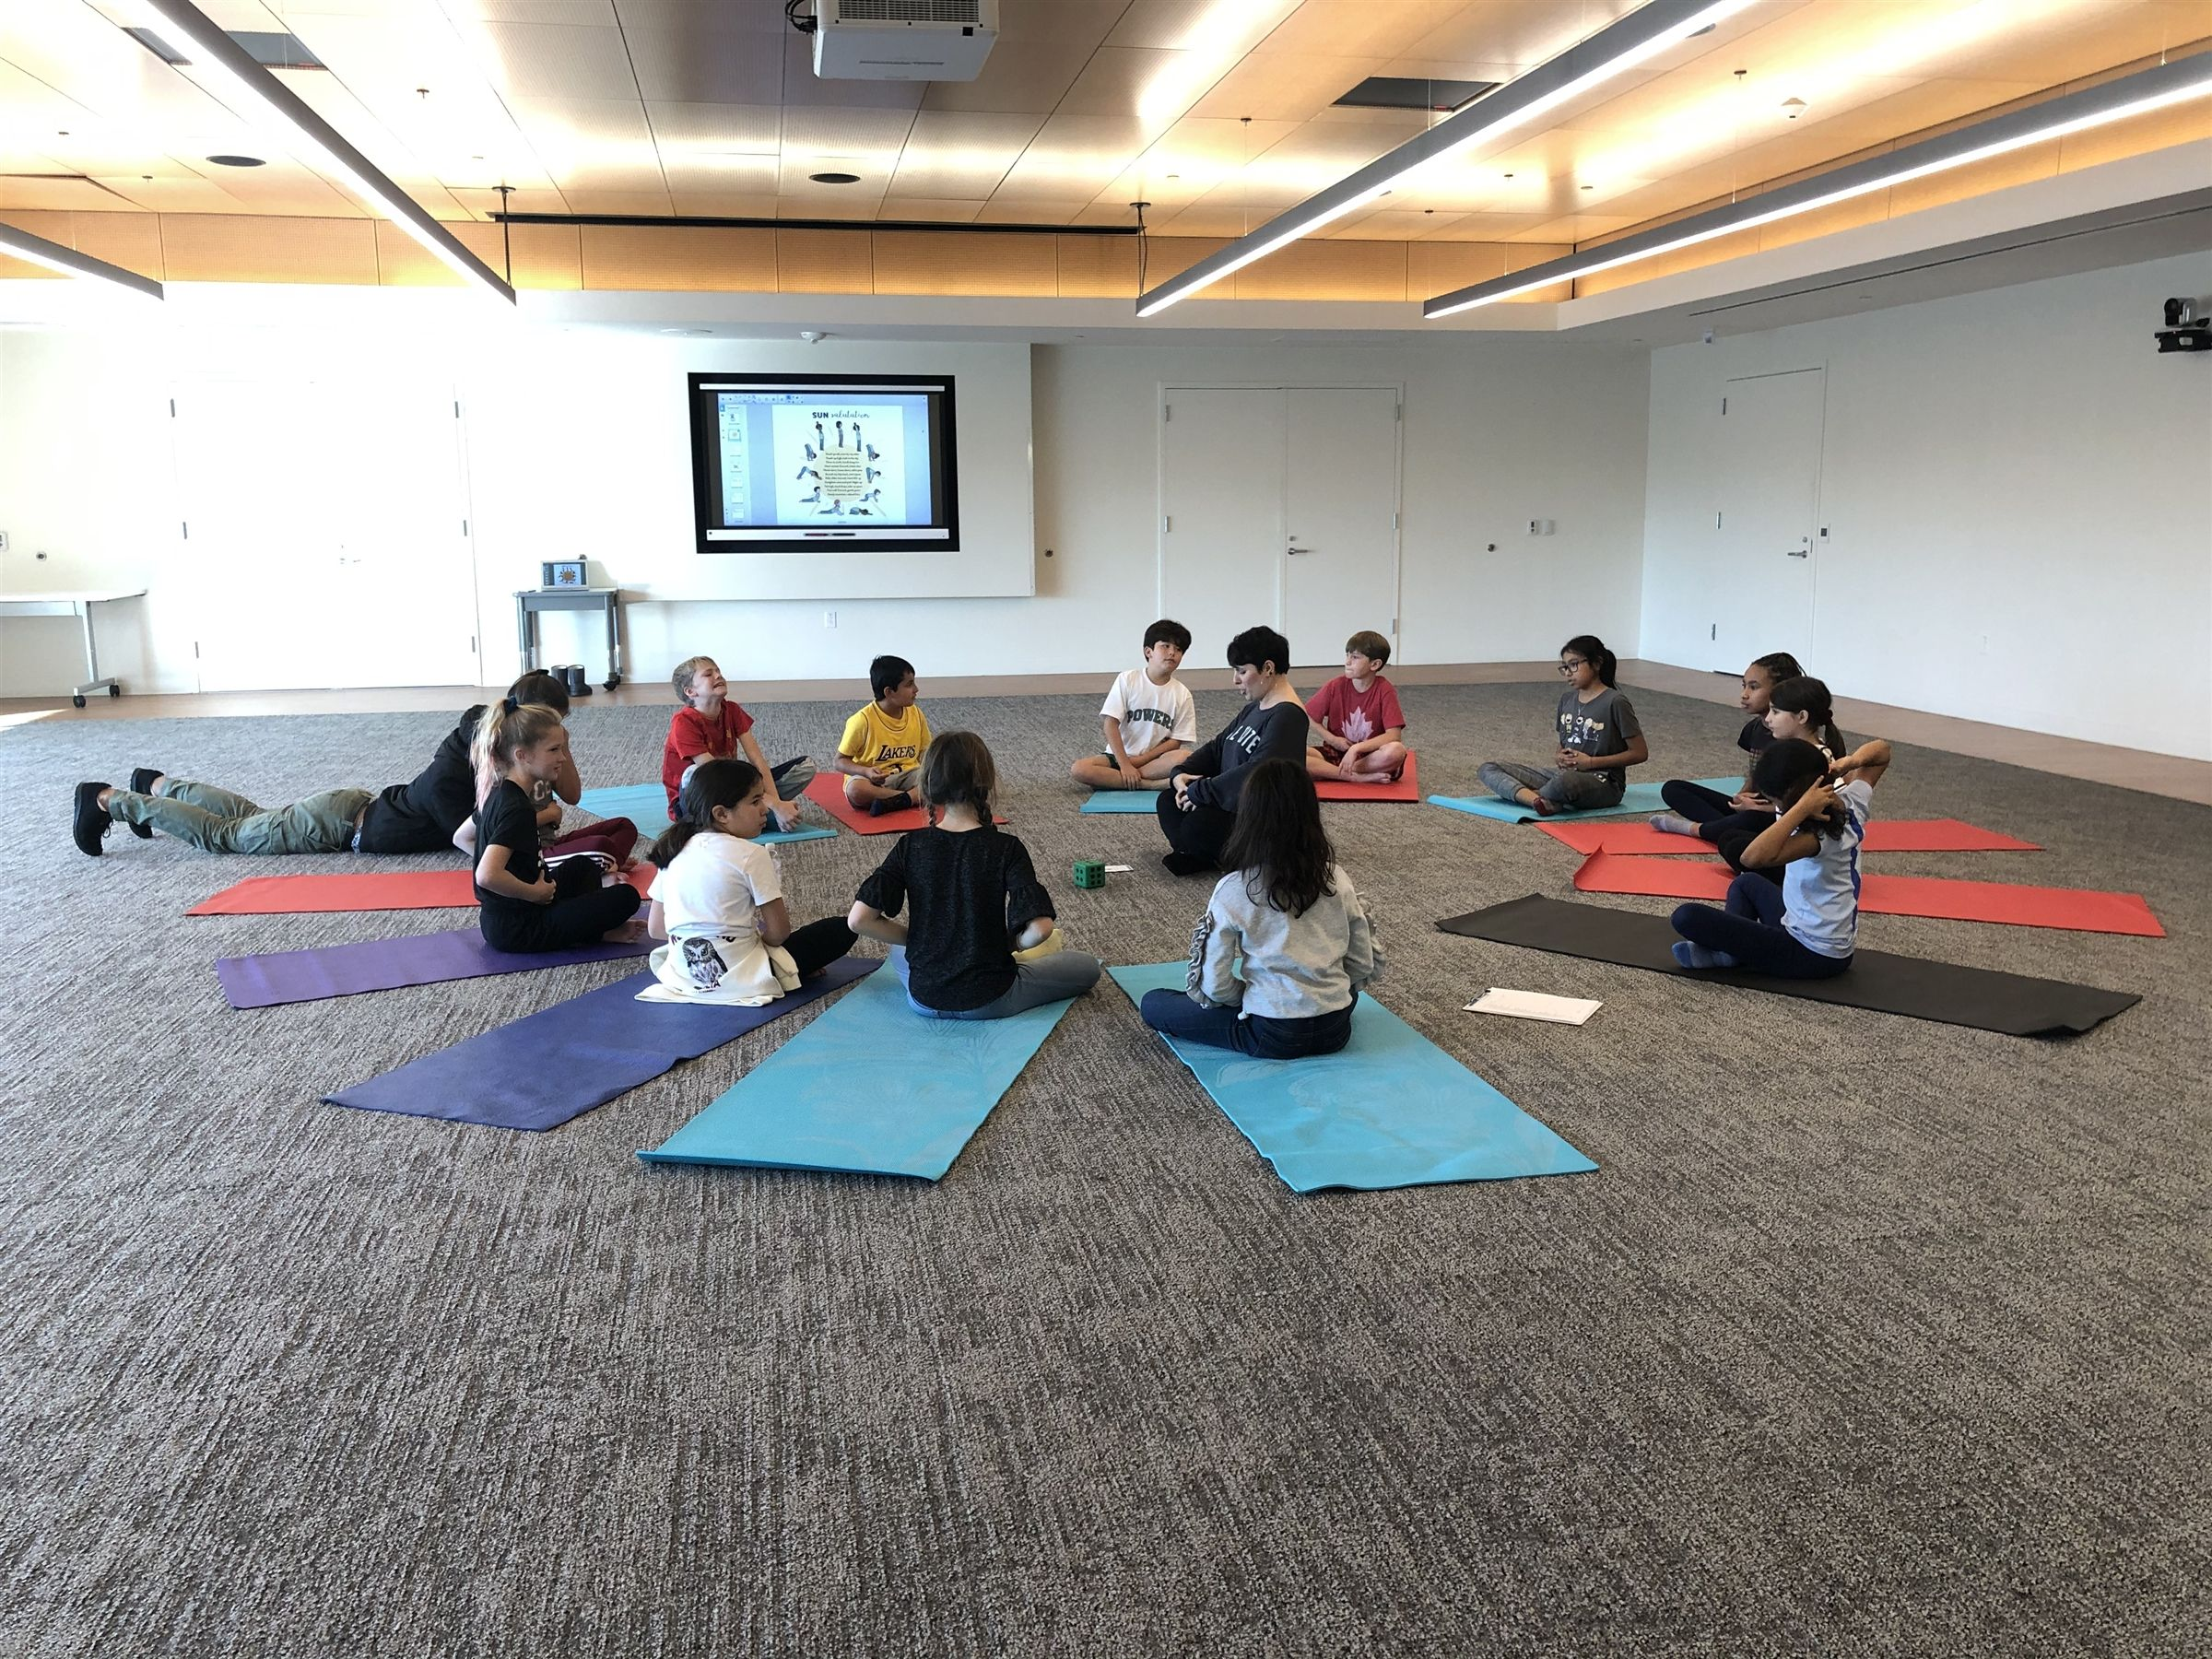 Students now have the opportunity to choose non-graded elective courses such as Yoga, Architecture, and Storytelling.